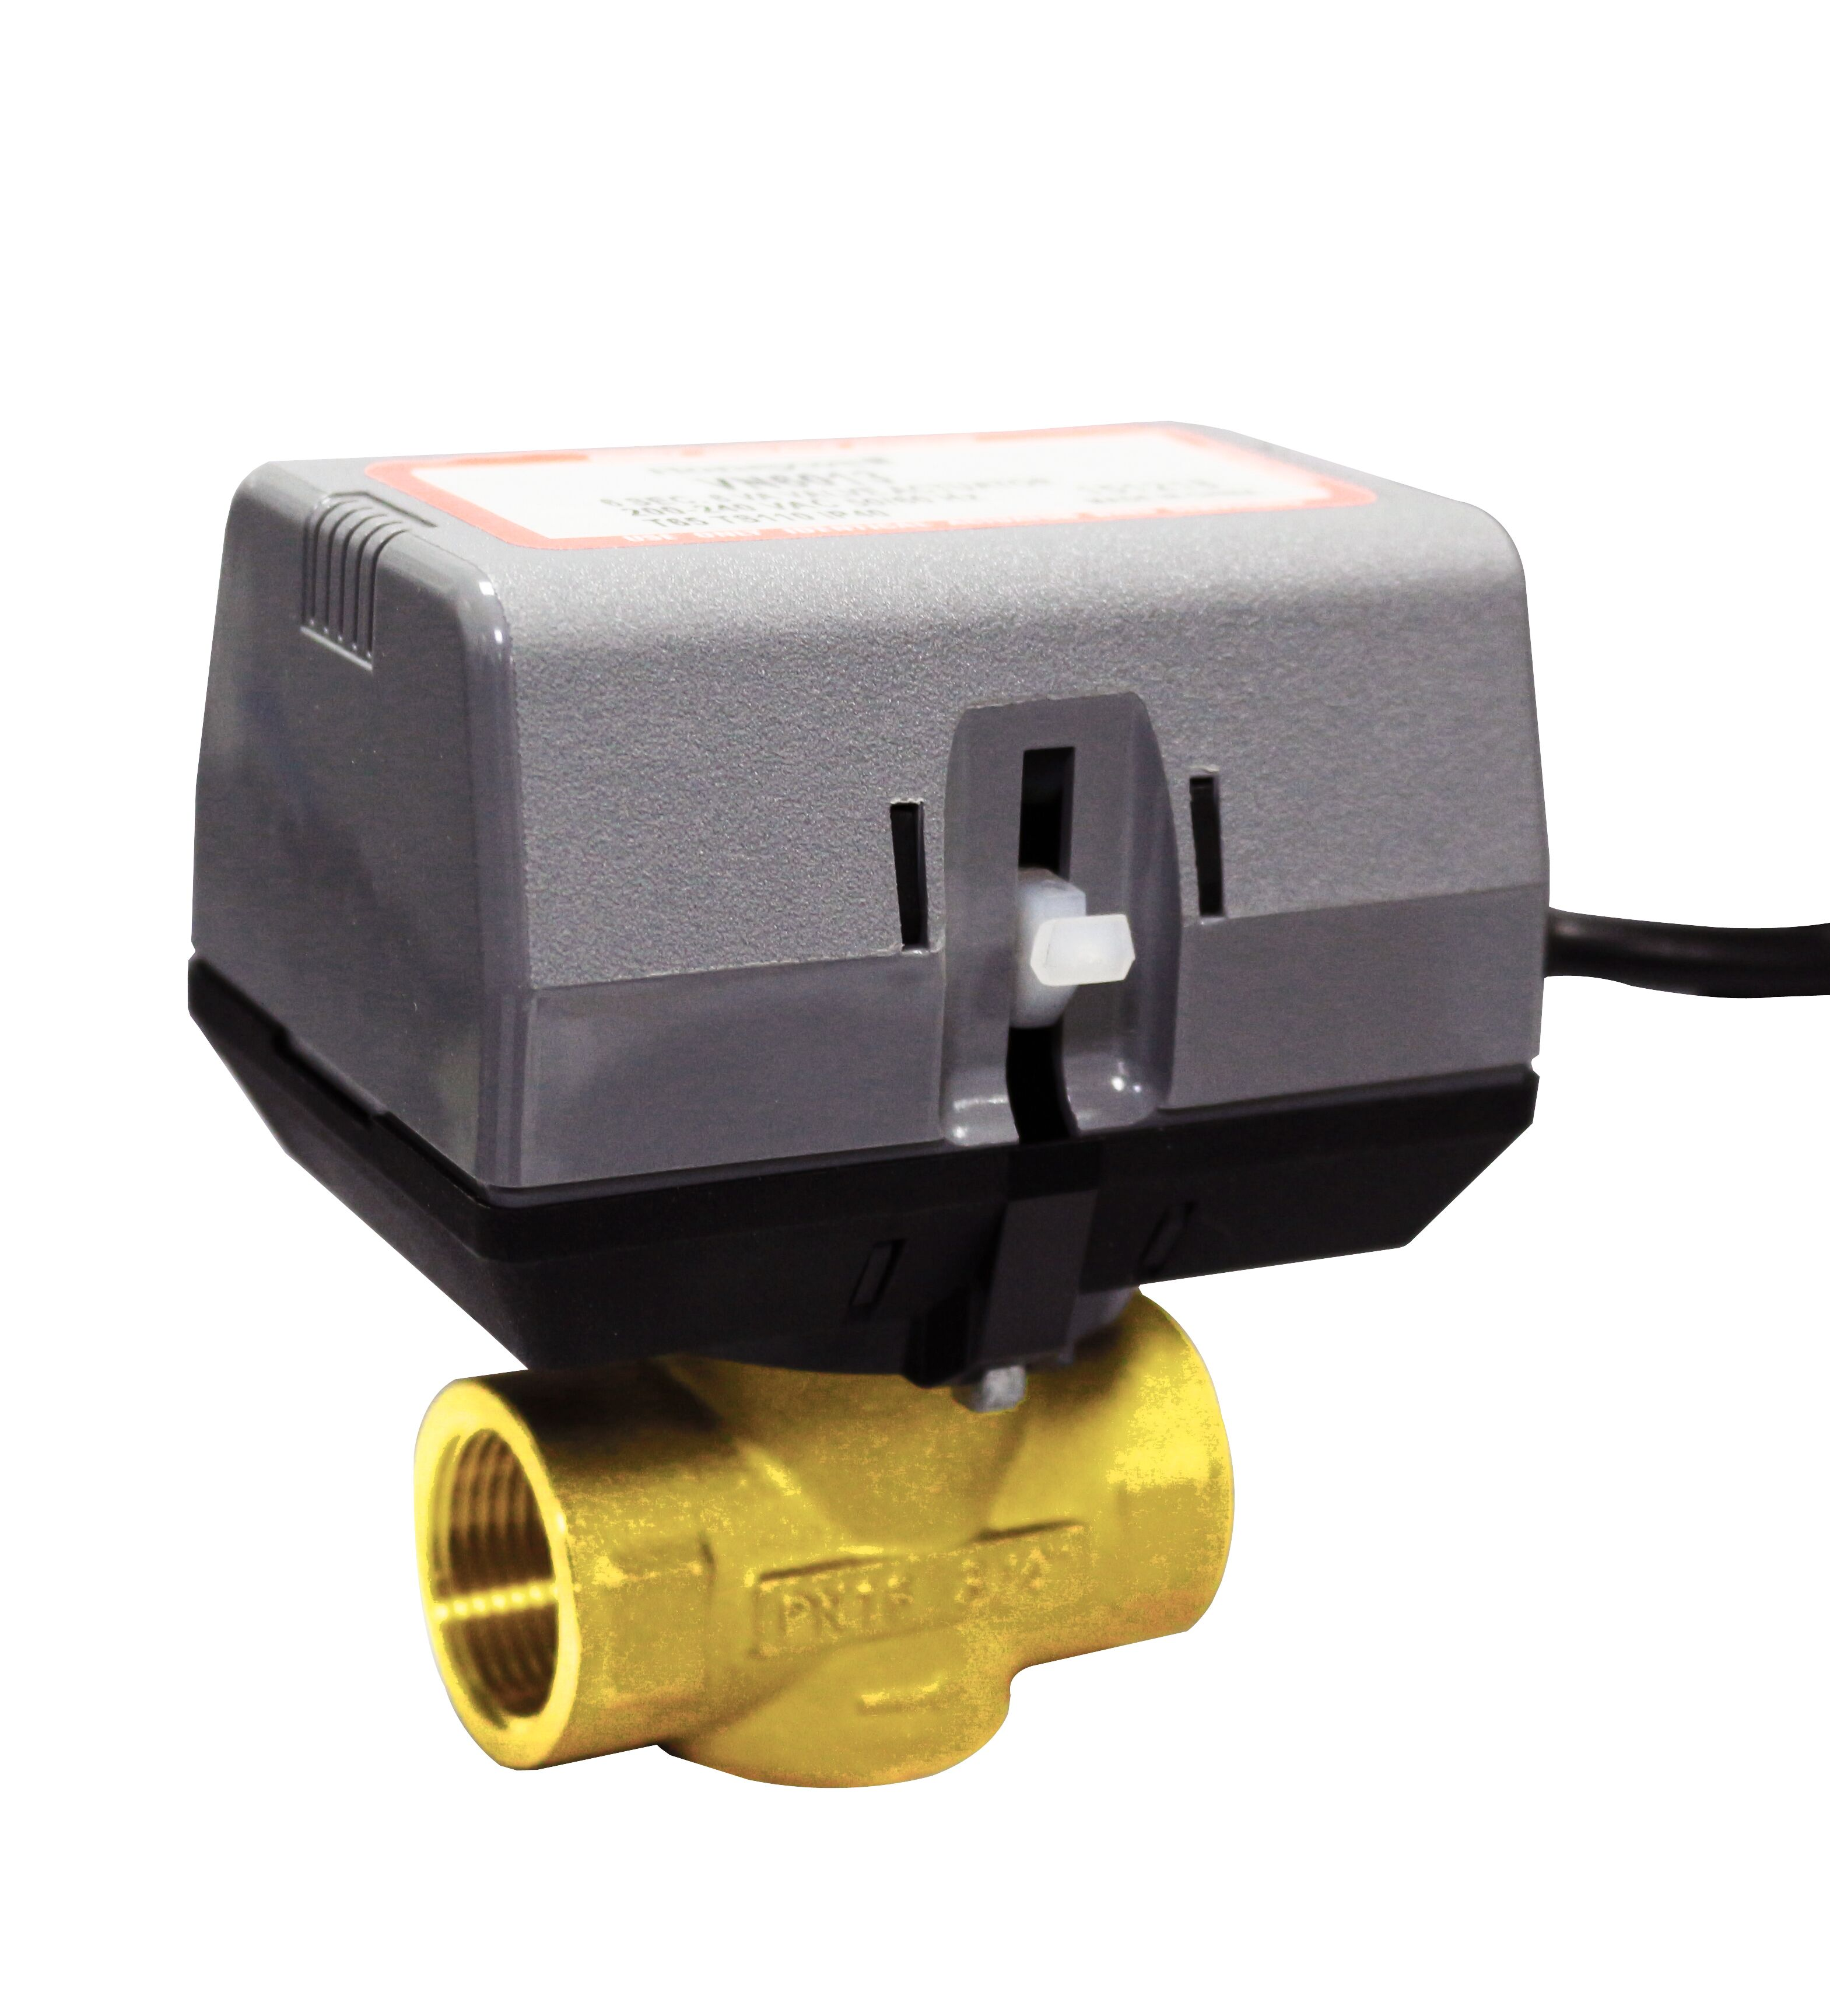 Honeywell Vc4013 Electric 2/3 Valve - Buy Vc4013,Electric 2-way Valve  Product on Alibaba com